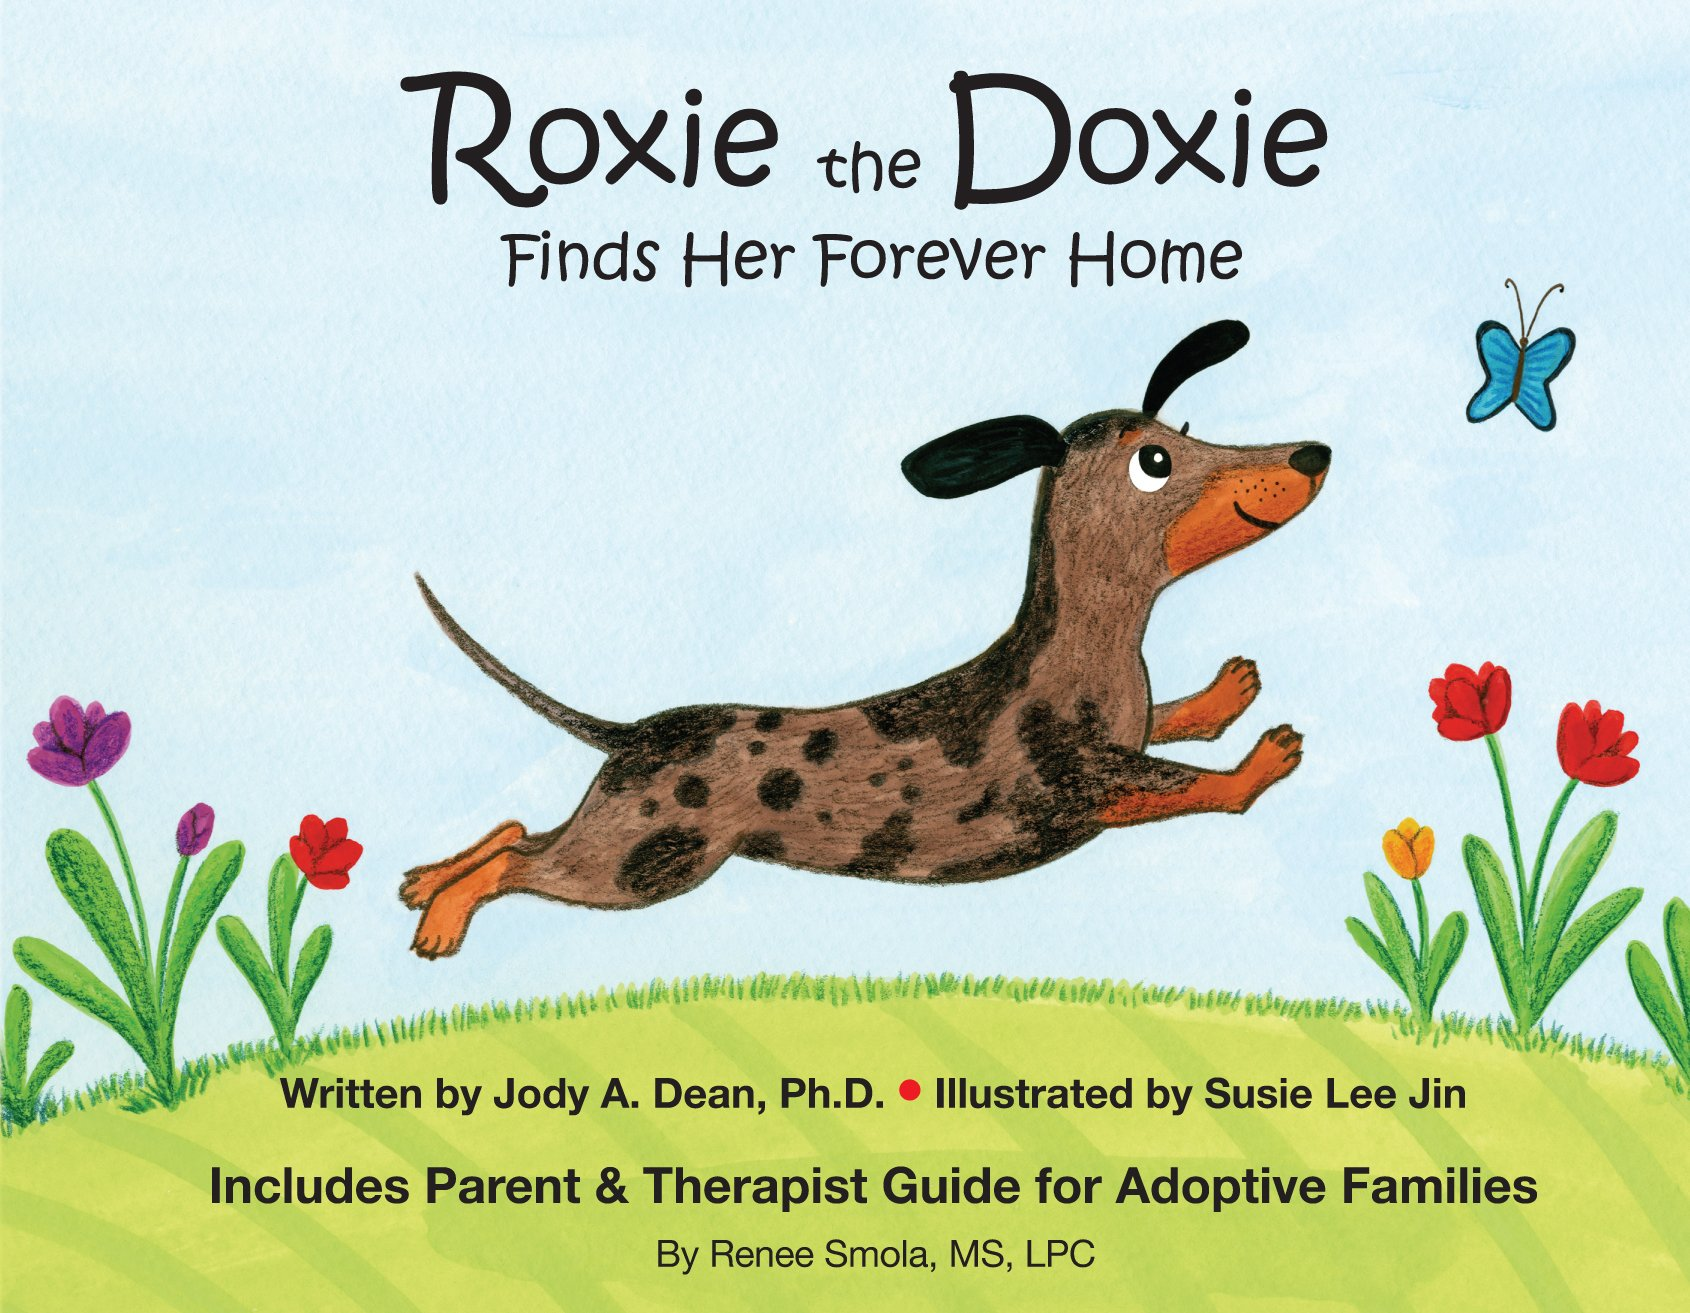 RoxieTheDoxie.jpg